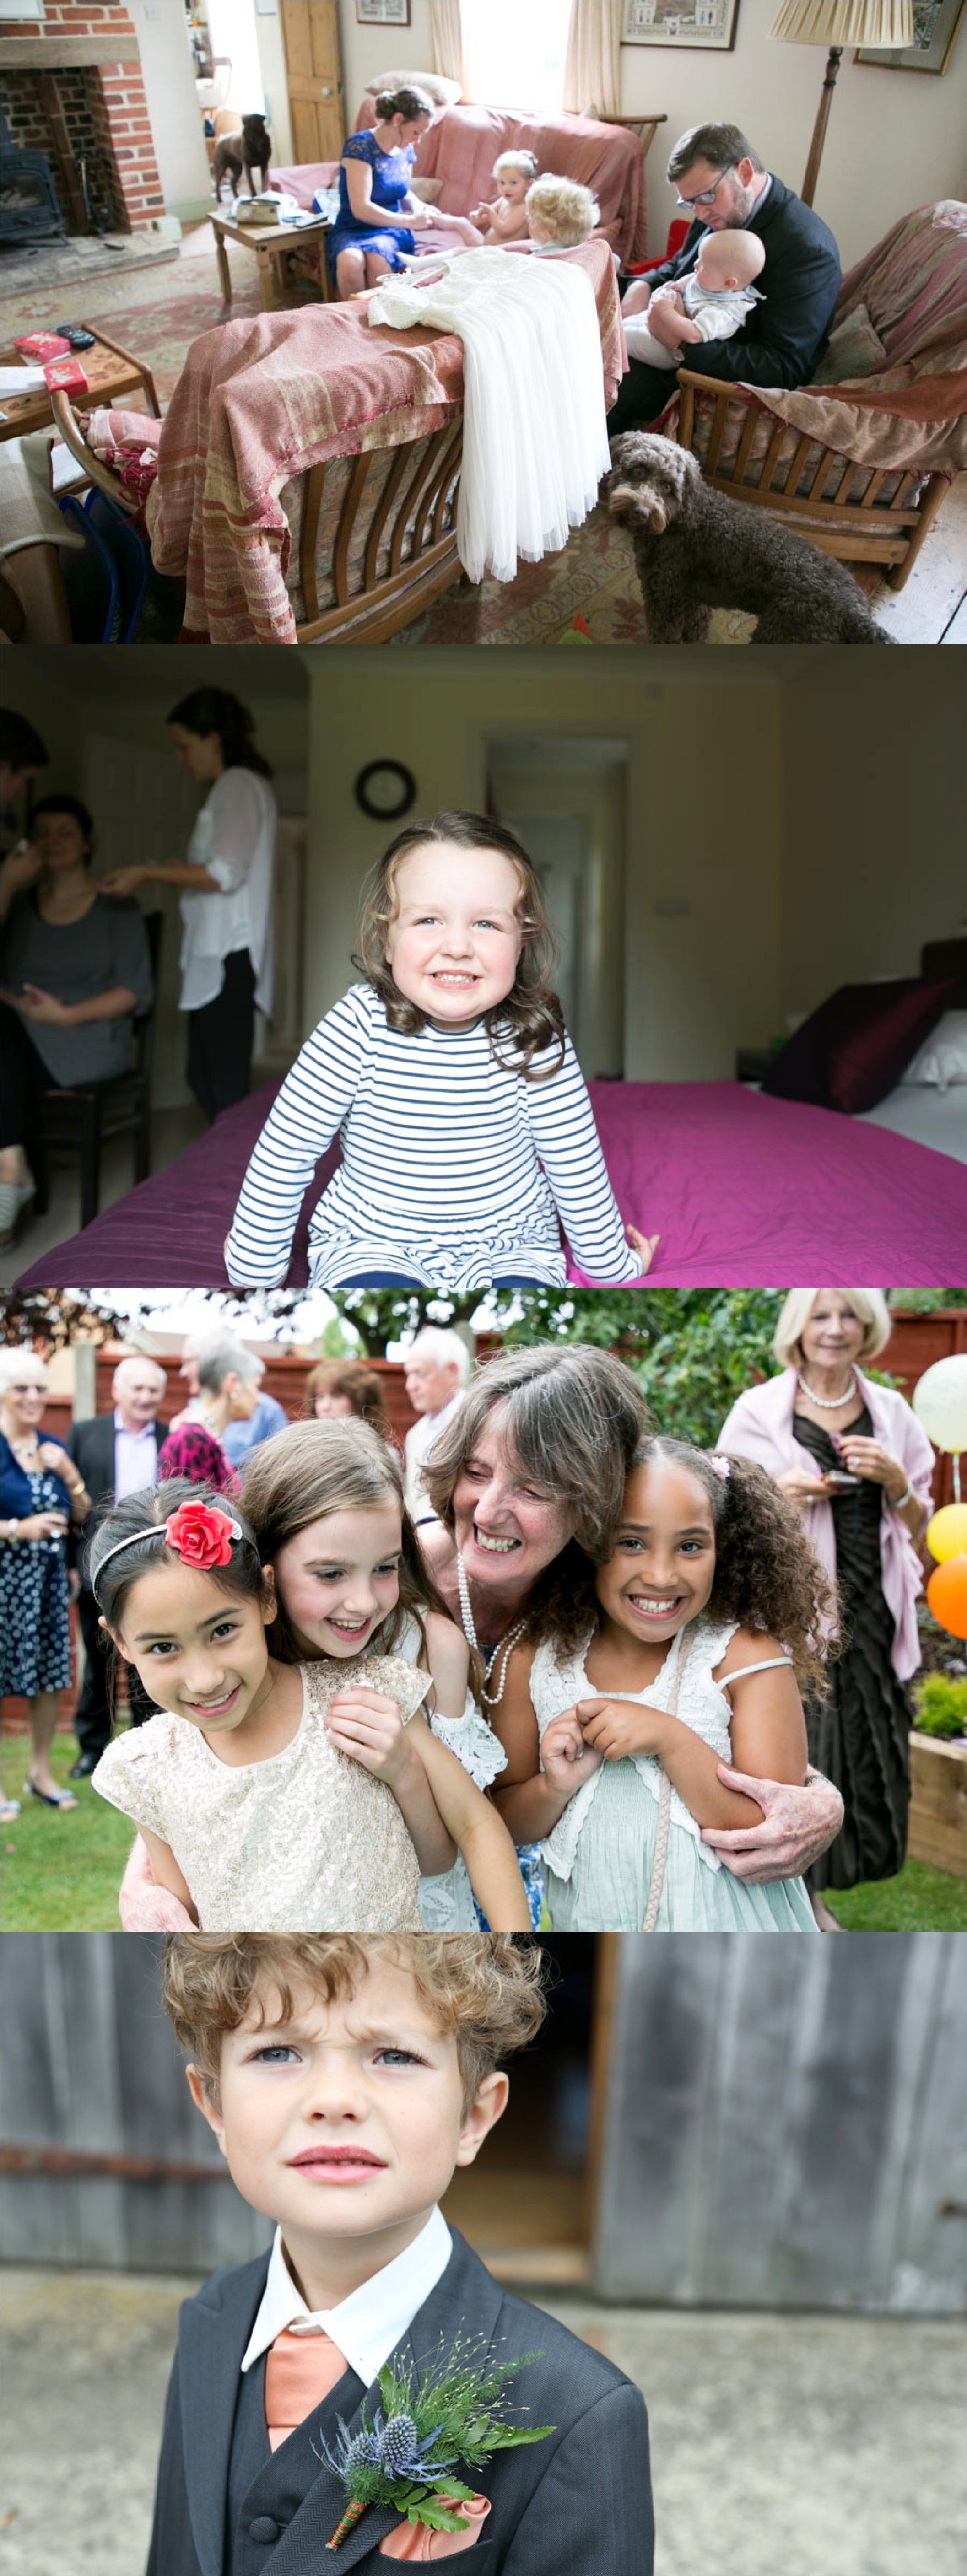 are you having children at your wedding? hints and tips from cambridge wedding photographer